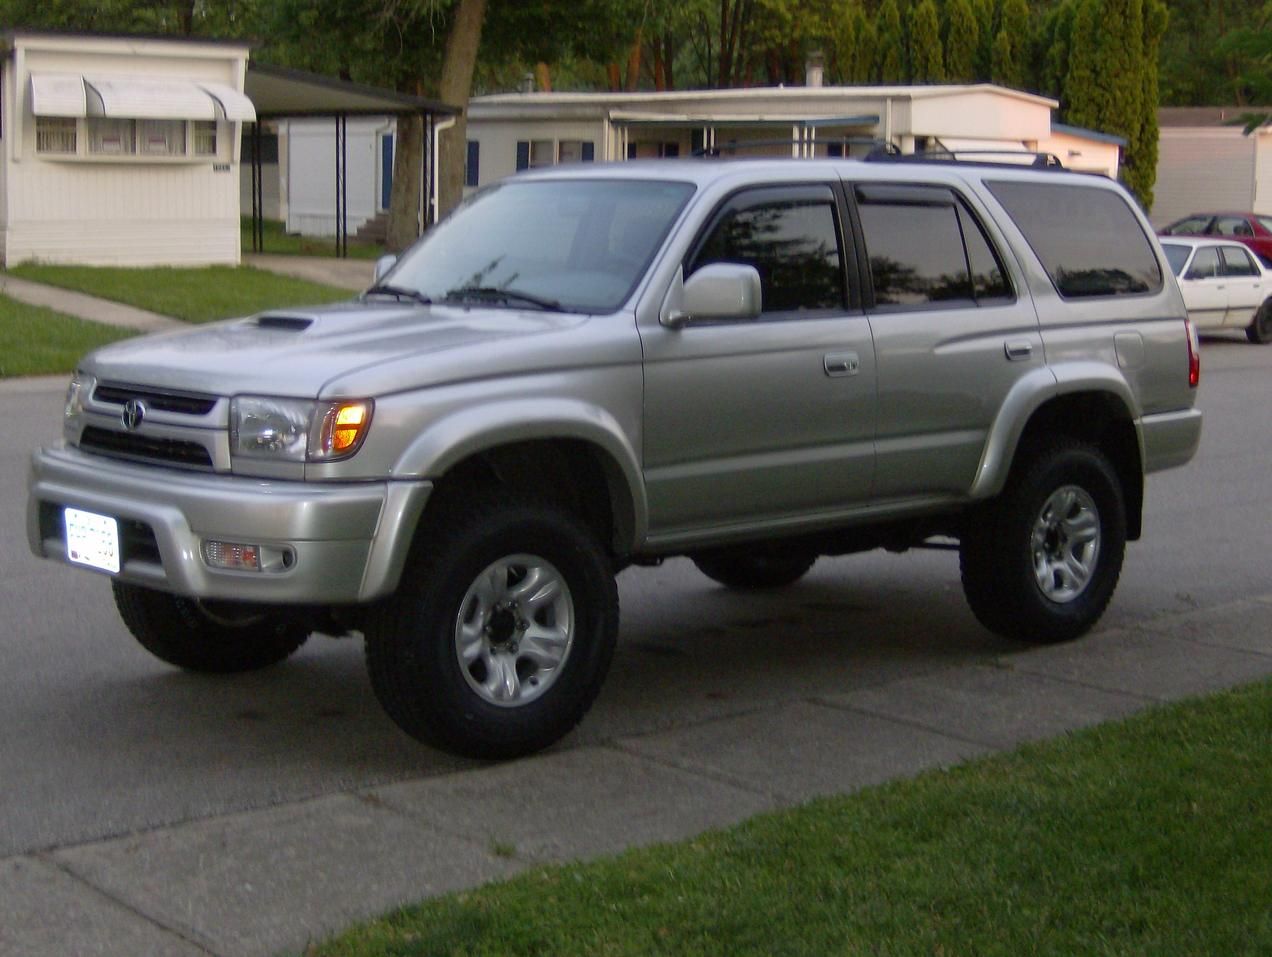 2002 4runner Or 4th Gen Toyota Forum Largest Need Some Help With Hella Lights Wiring 2001 Sport